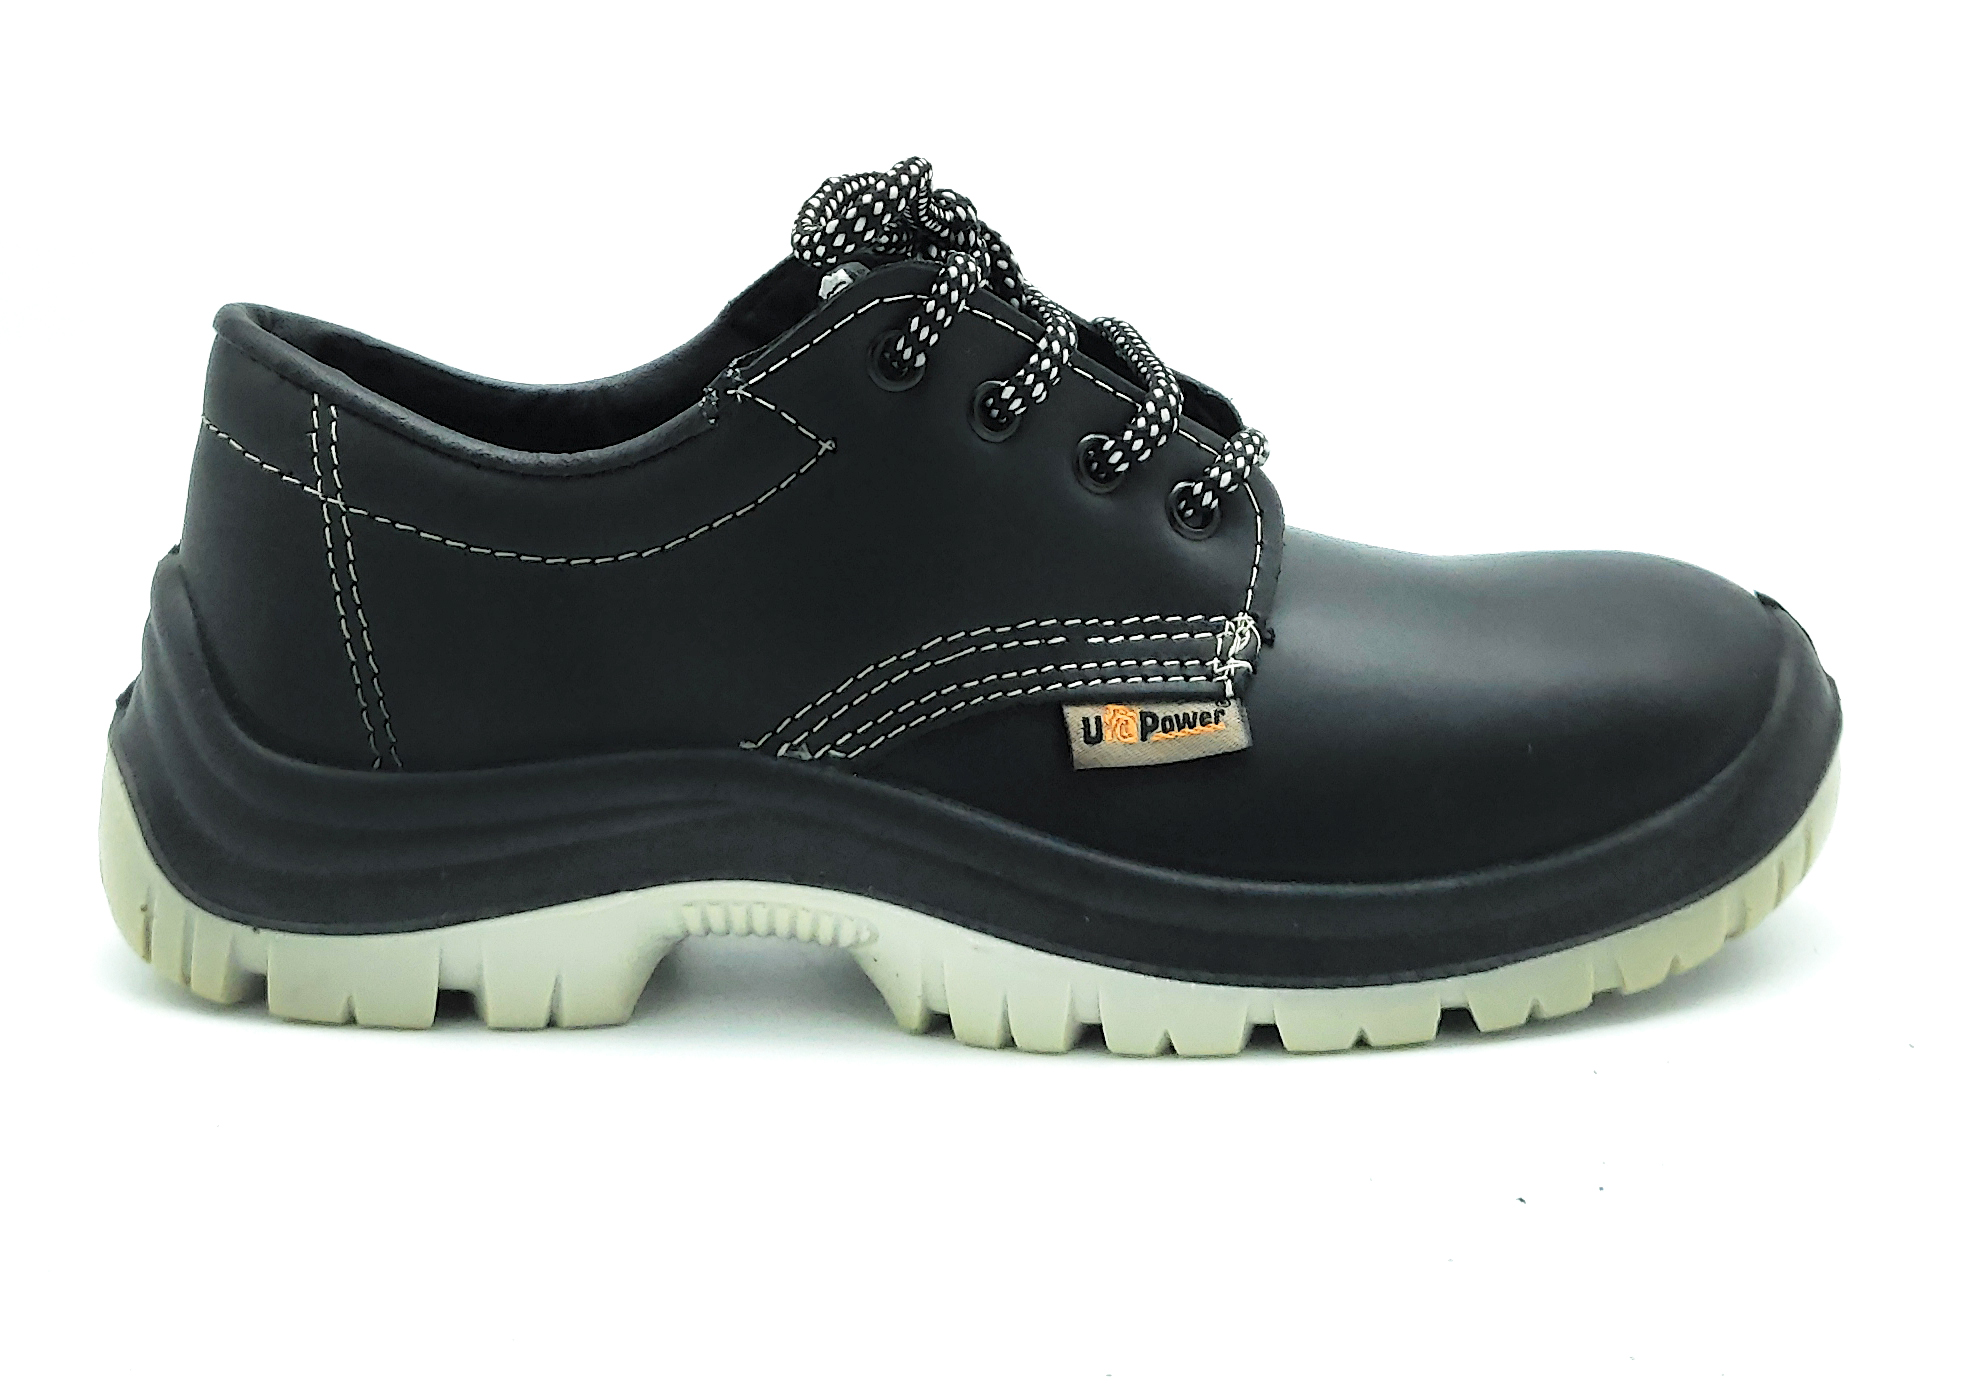 Shoes safety work drivers, non-slip footwear lace-up worker